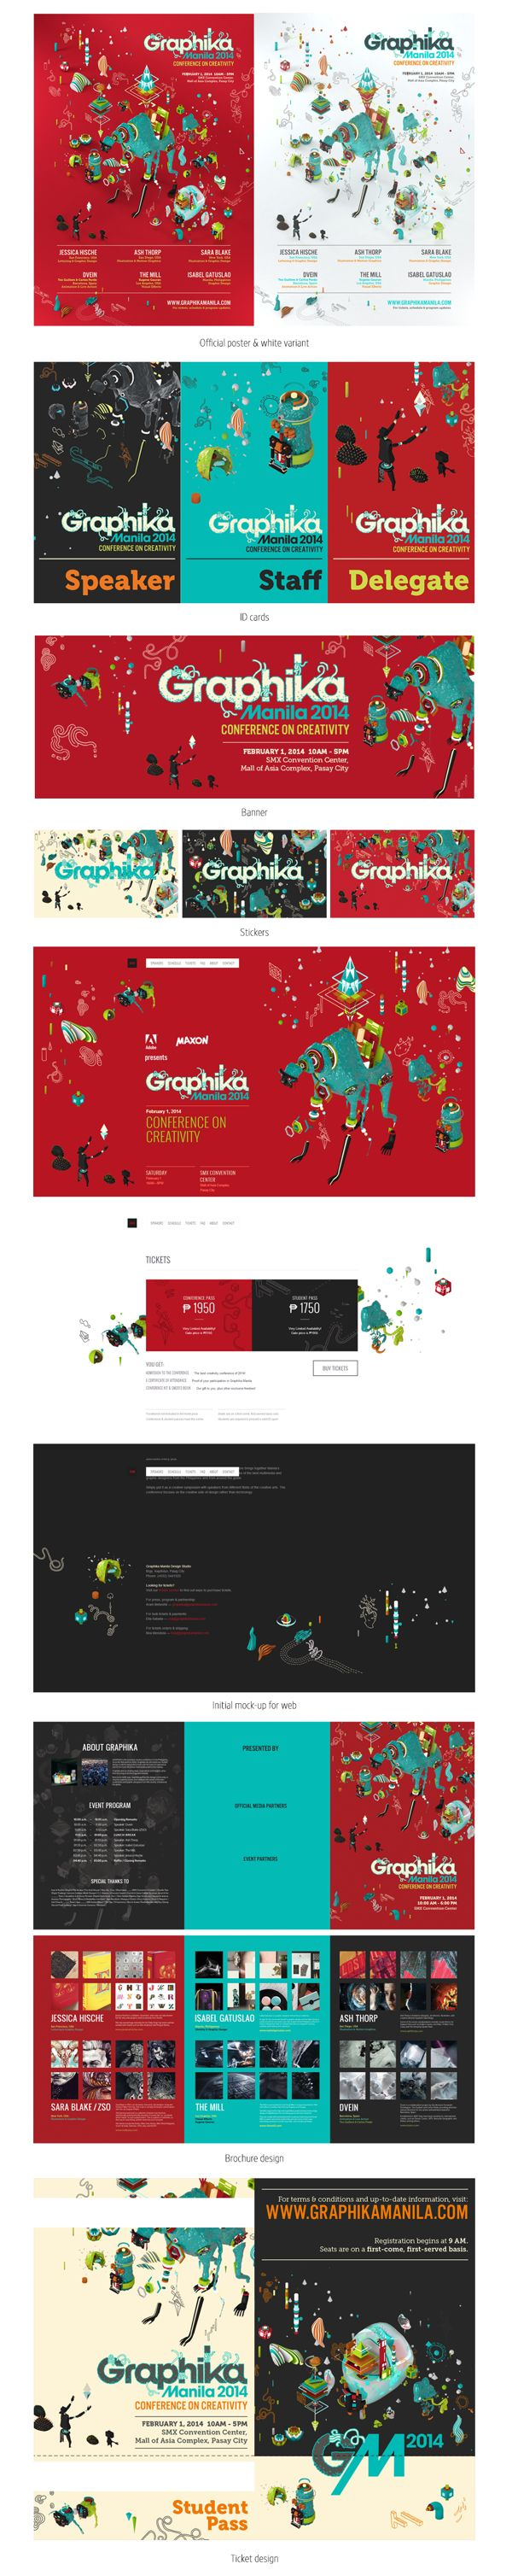 Poster design guidelines - Graphika Manila Is The Premiere Design Conference In The Philippines The International Speakers For This Year Were Jessica Hische Ash Thorp The Mill